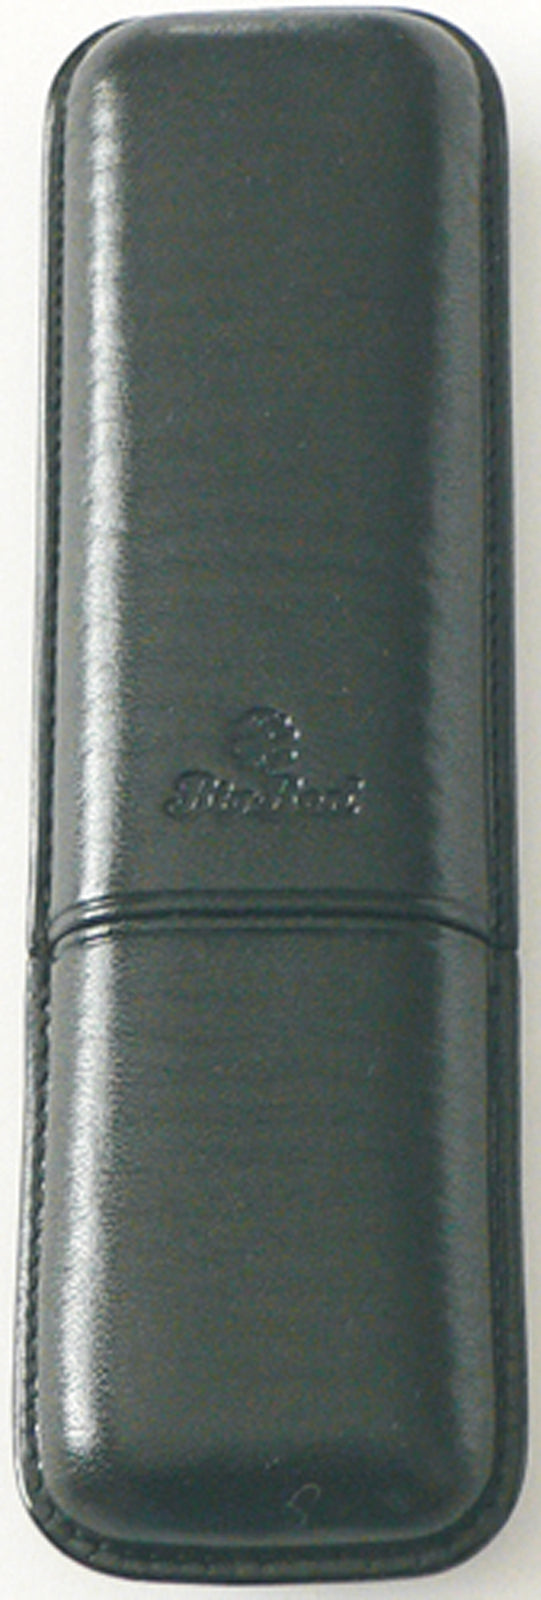 BigBen genuine leather cigar case 2 churchill black 653.450.210